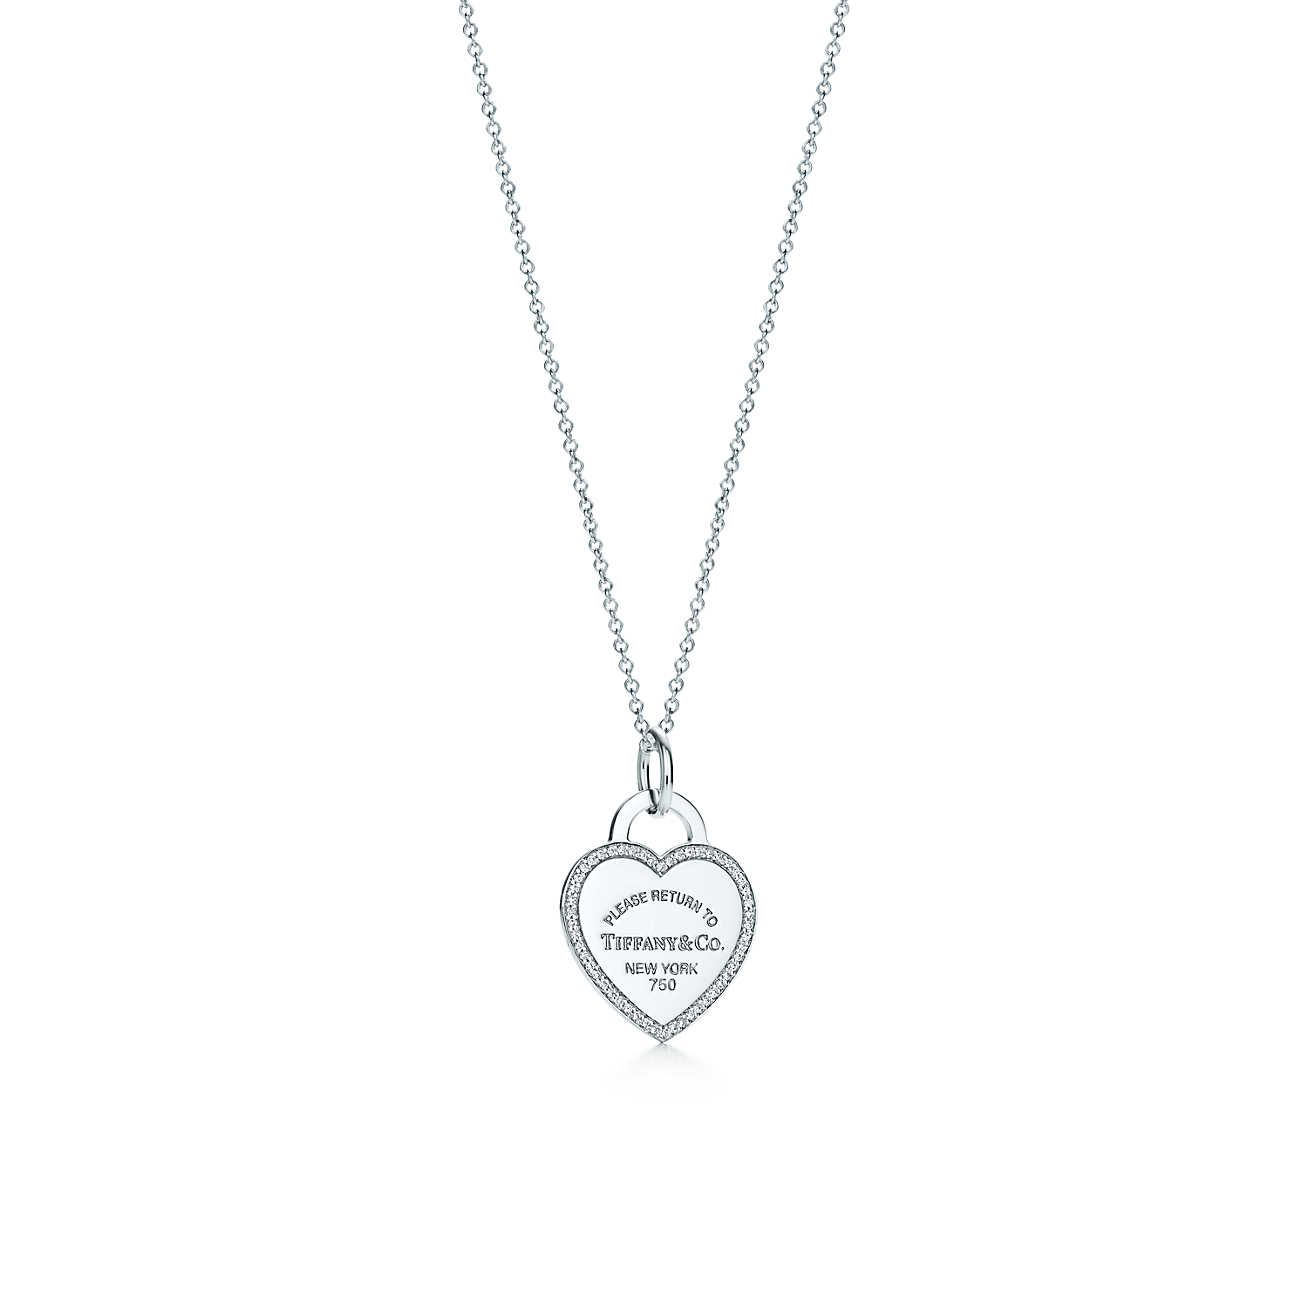 Luxury Jewelry Gifts Accessories Since 1837 Necklace Heart Tag Tiffany Co